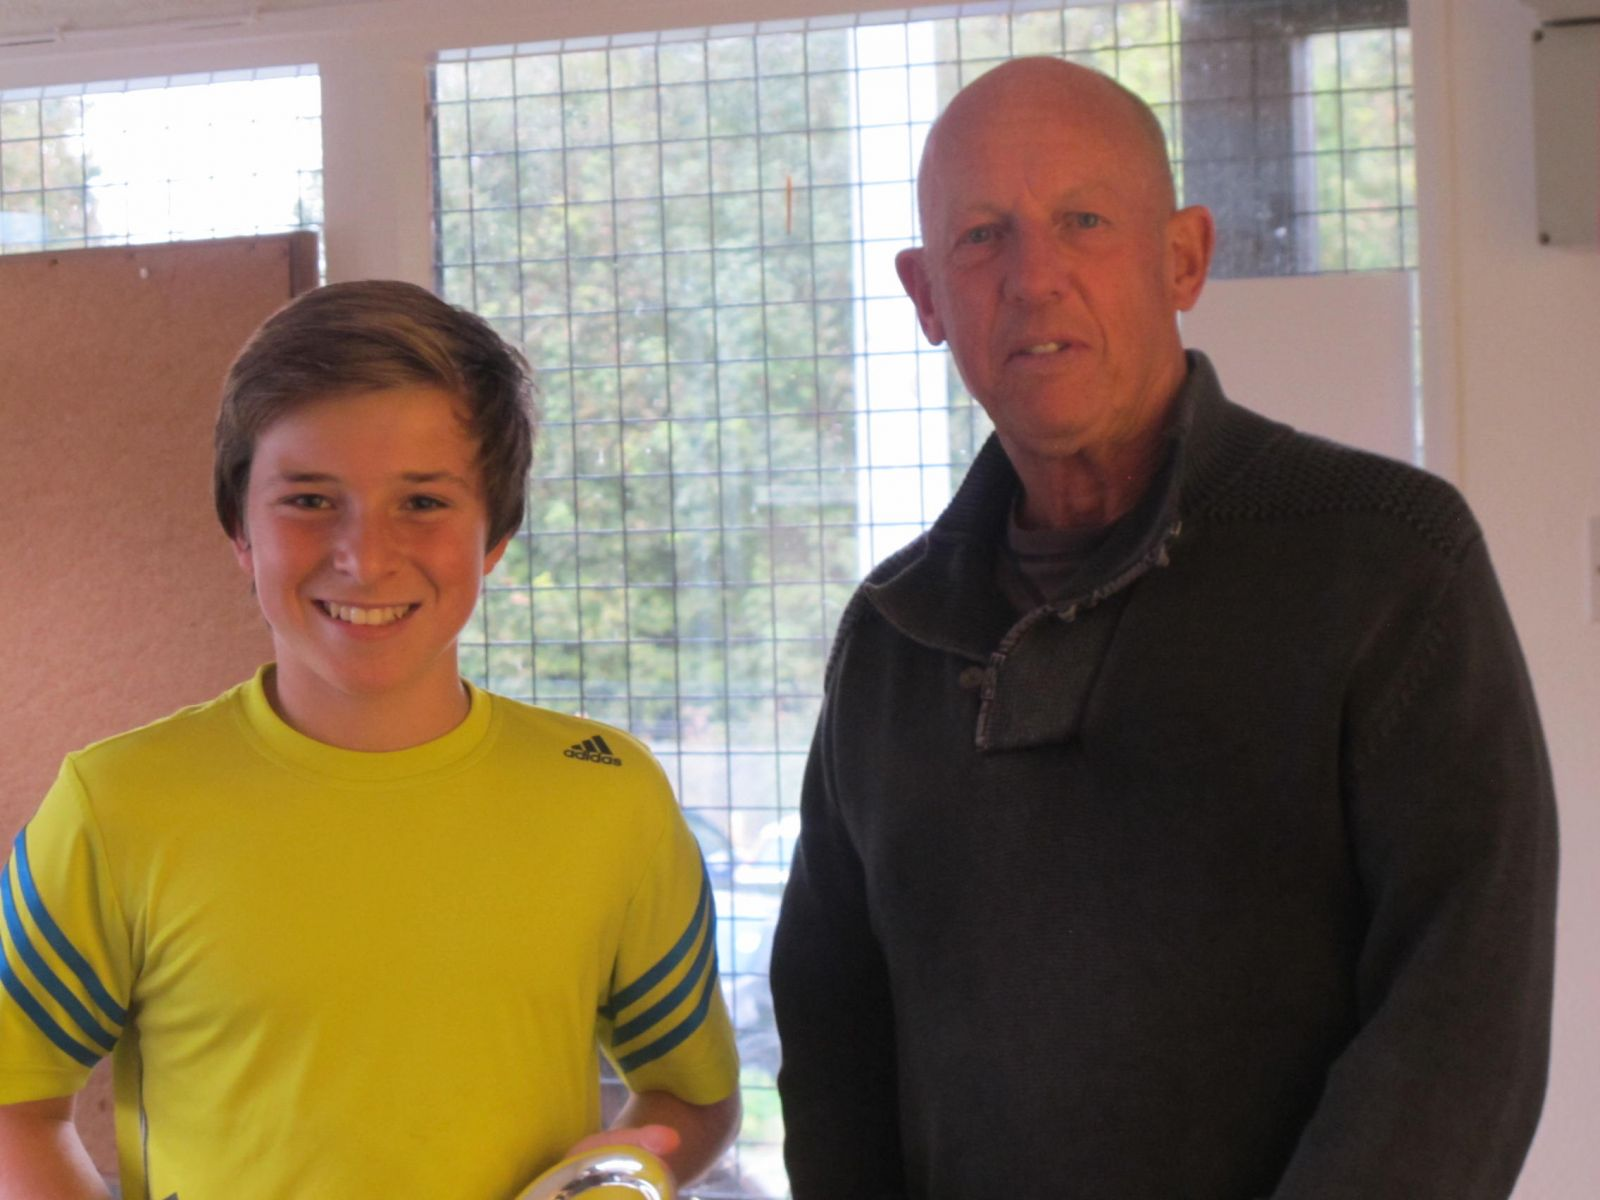 Joe Chambers receiving his Men's Singles Consolation Trophy from Tennis Chairman Mike Henderson